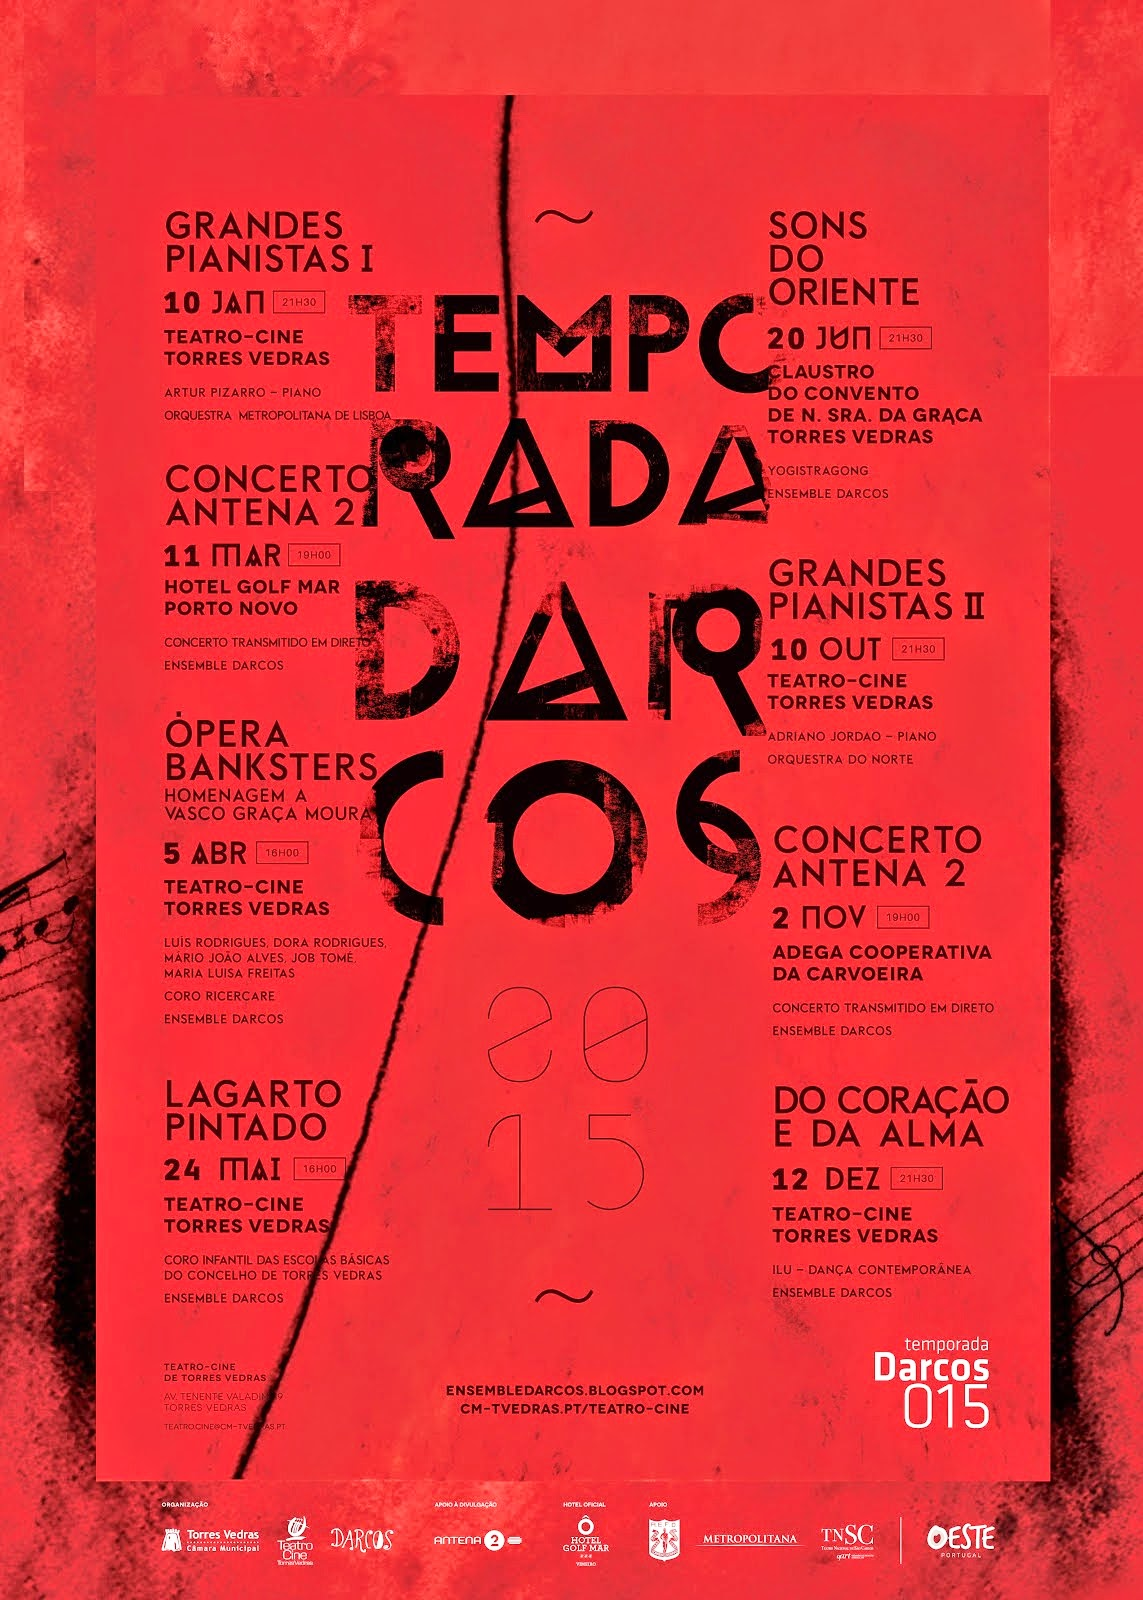 ENSEMBLE DARCOS . NUNO CÔRTE-REAL